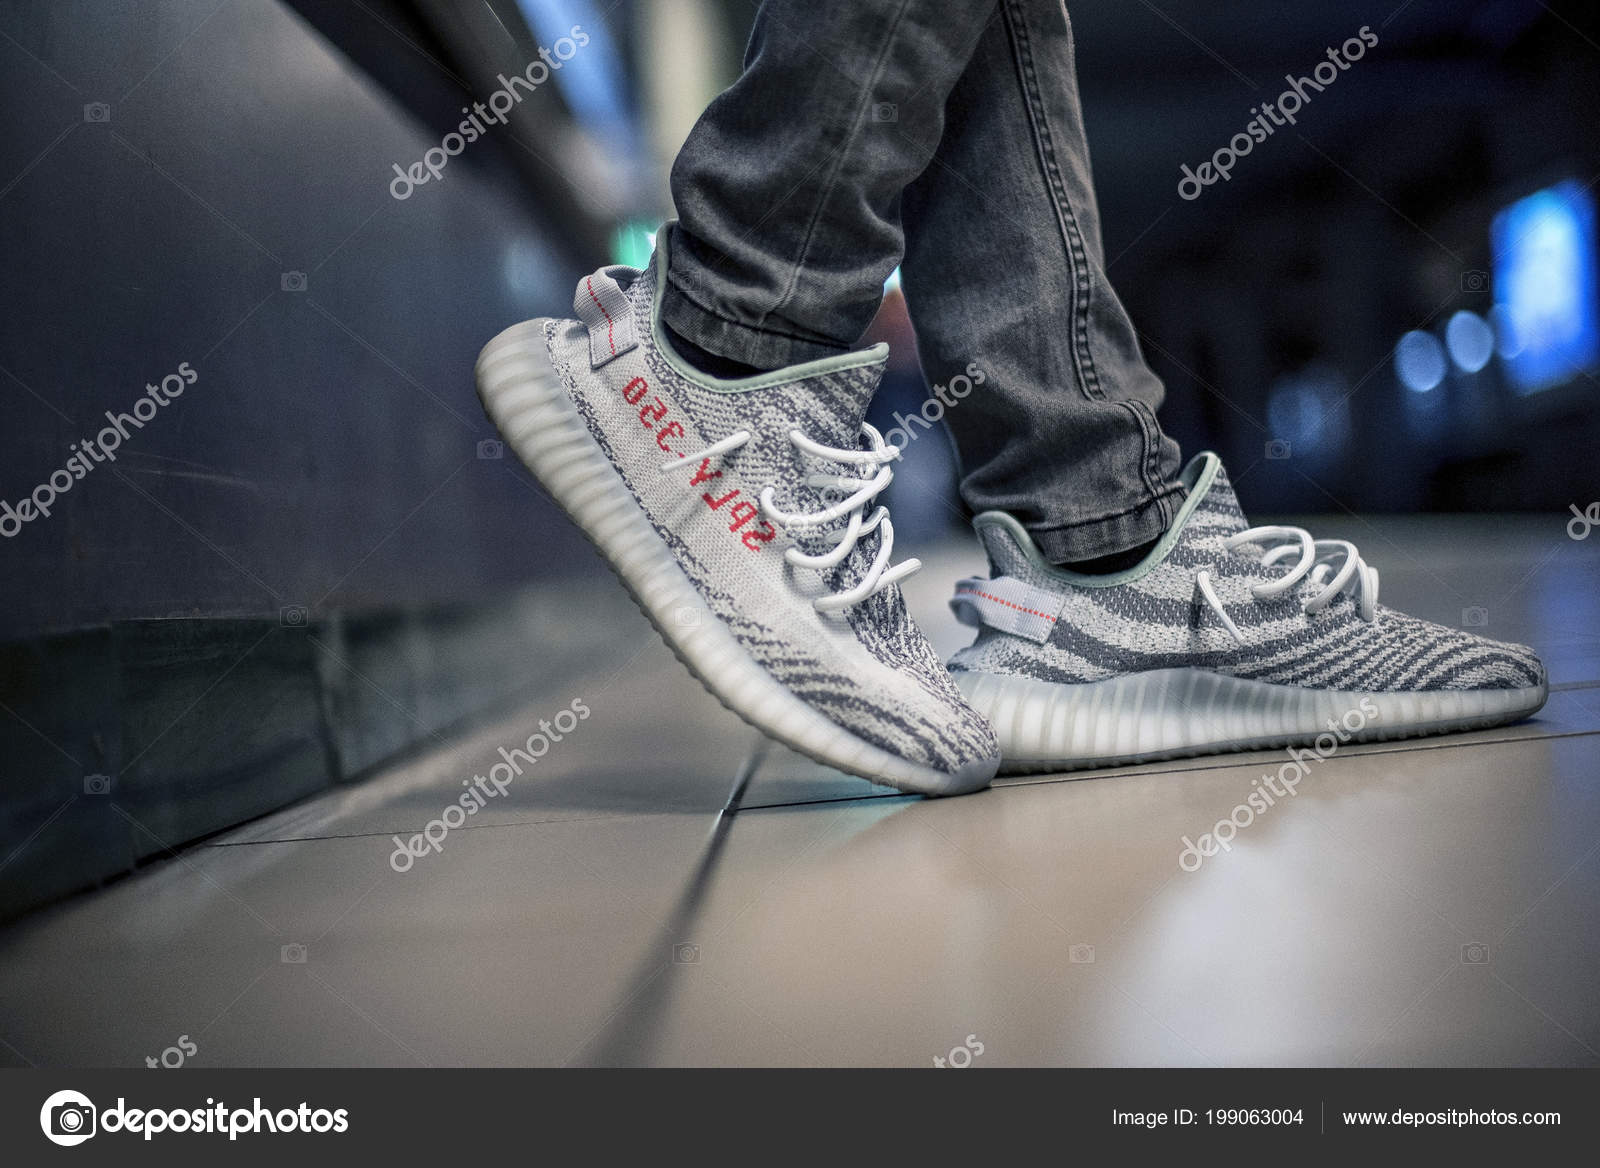 timeless design 03ab0 52cfd Pictures: yeezy shoes | Milan Italy January 2018 Man Wearing ...